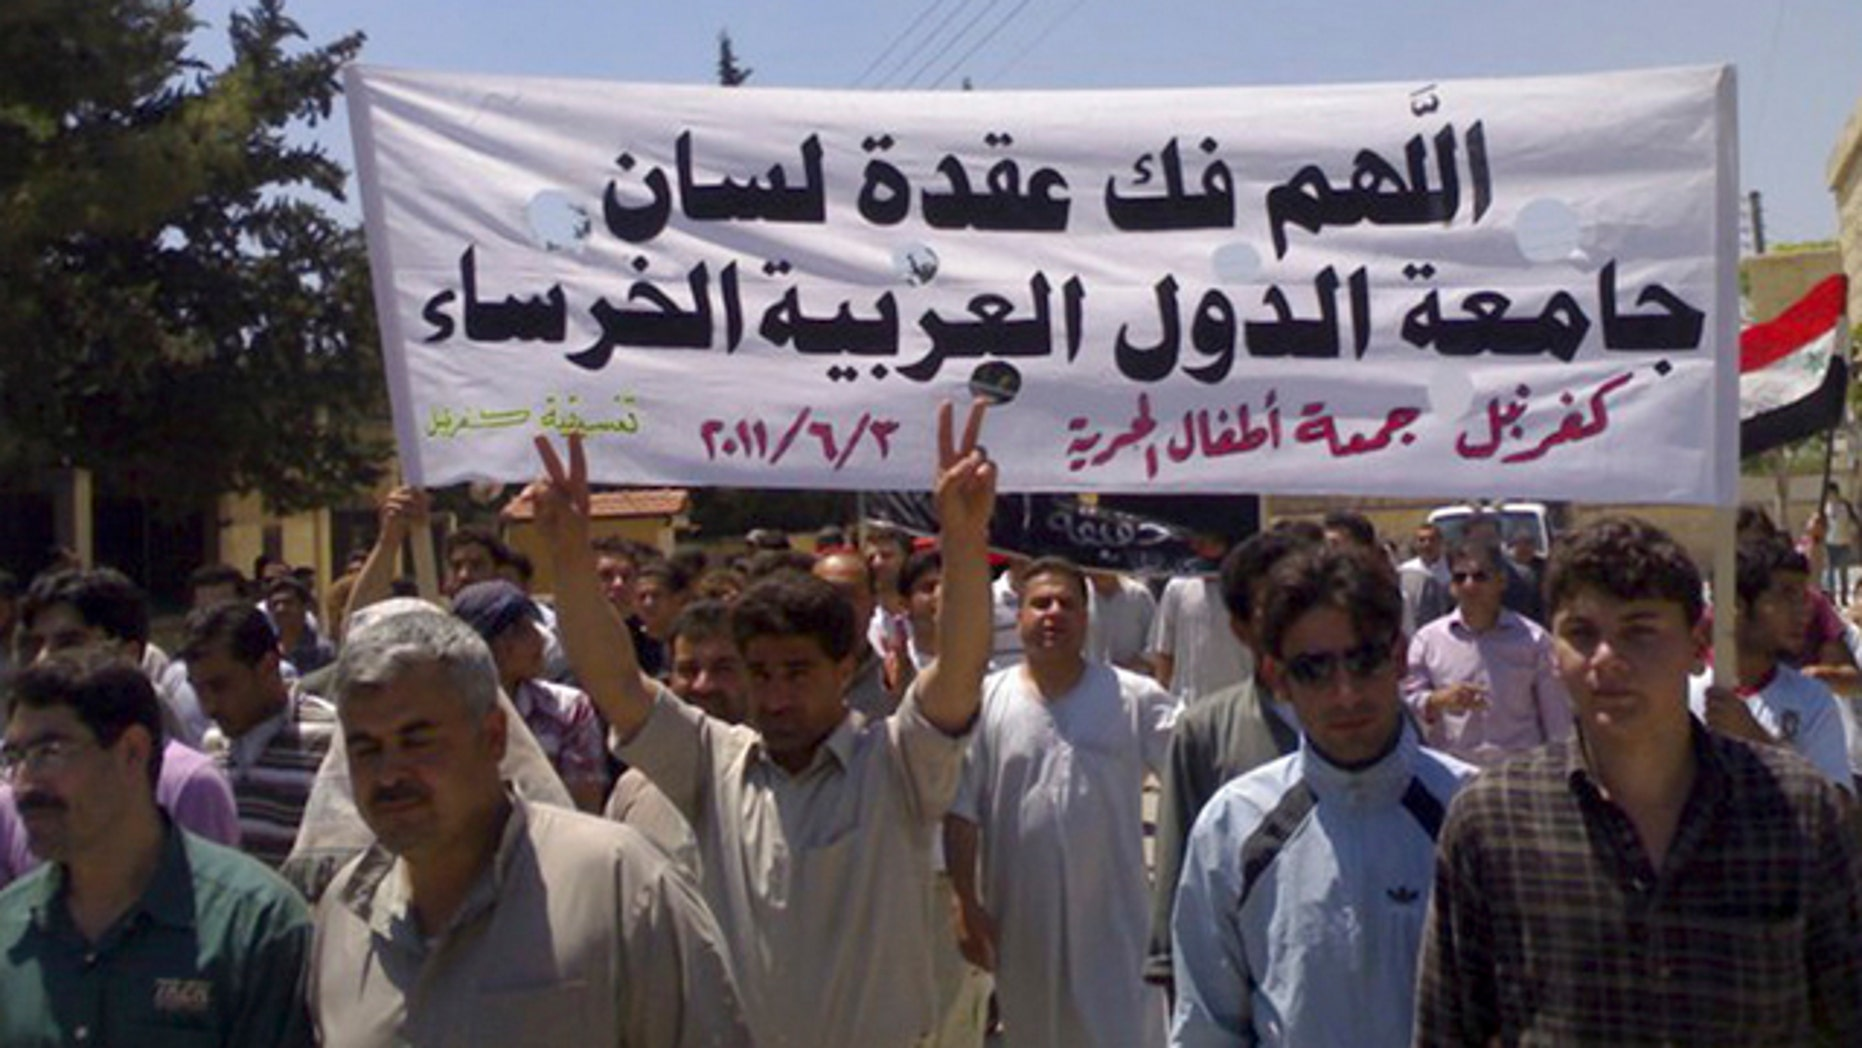 June 3: In this citizen journalism image made on a mobile phone and provided by Shaam News Network, Syrian protesters hold an Arabic banner as they march during a protest at the village of Kfar-Nebel, in the northen province of Edleb, Syria.